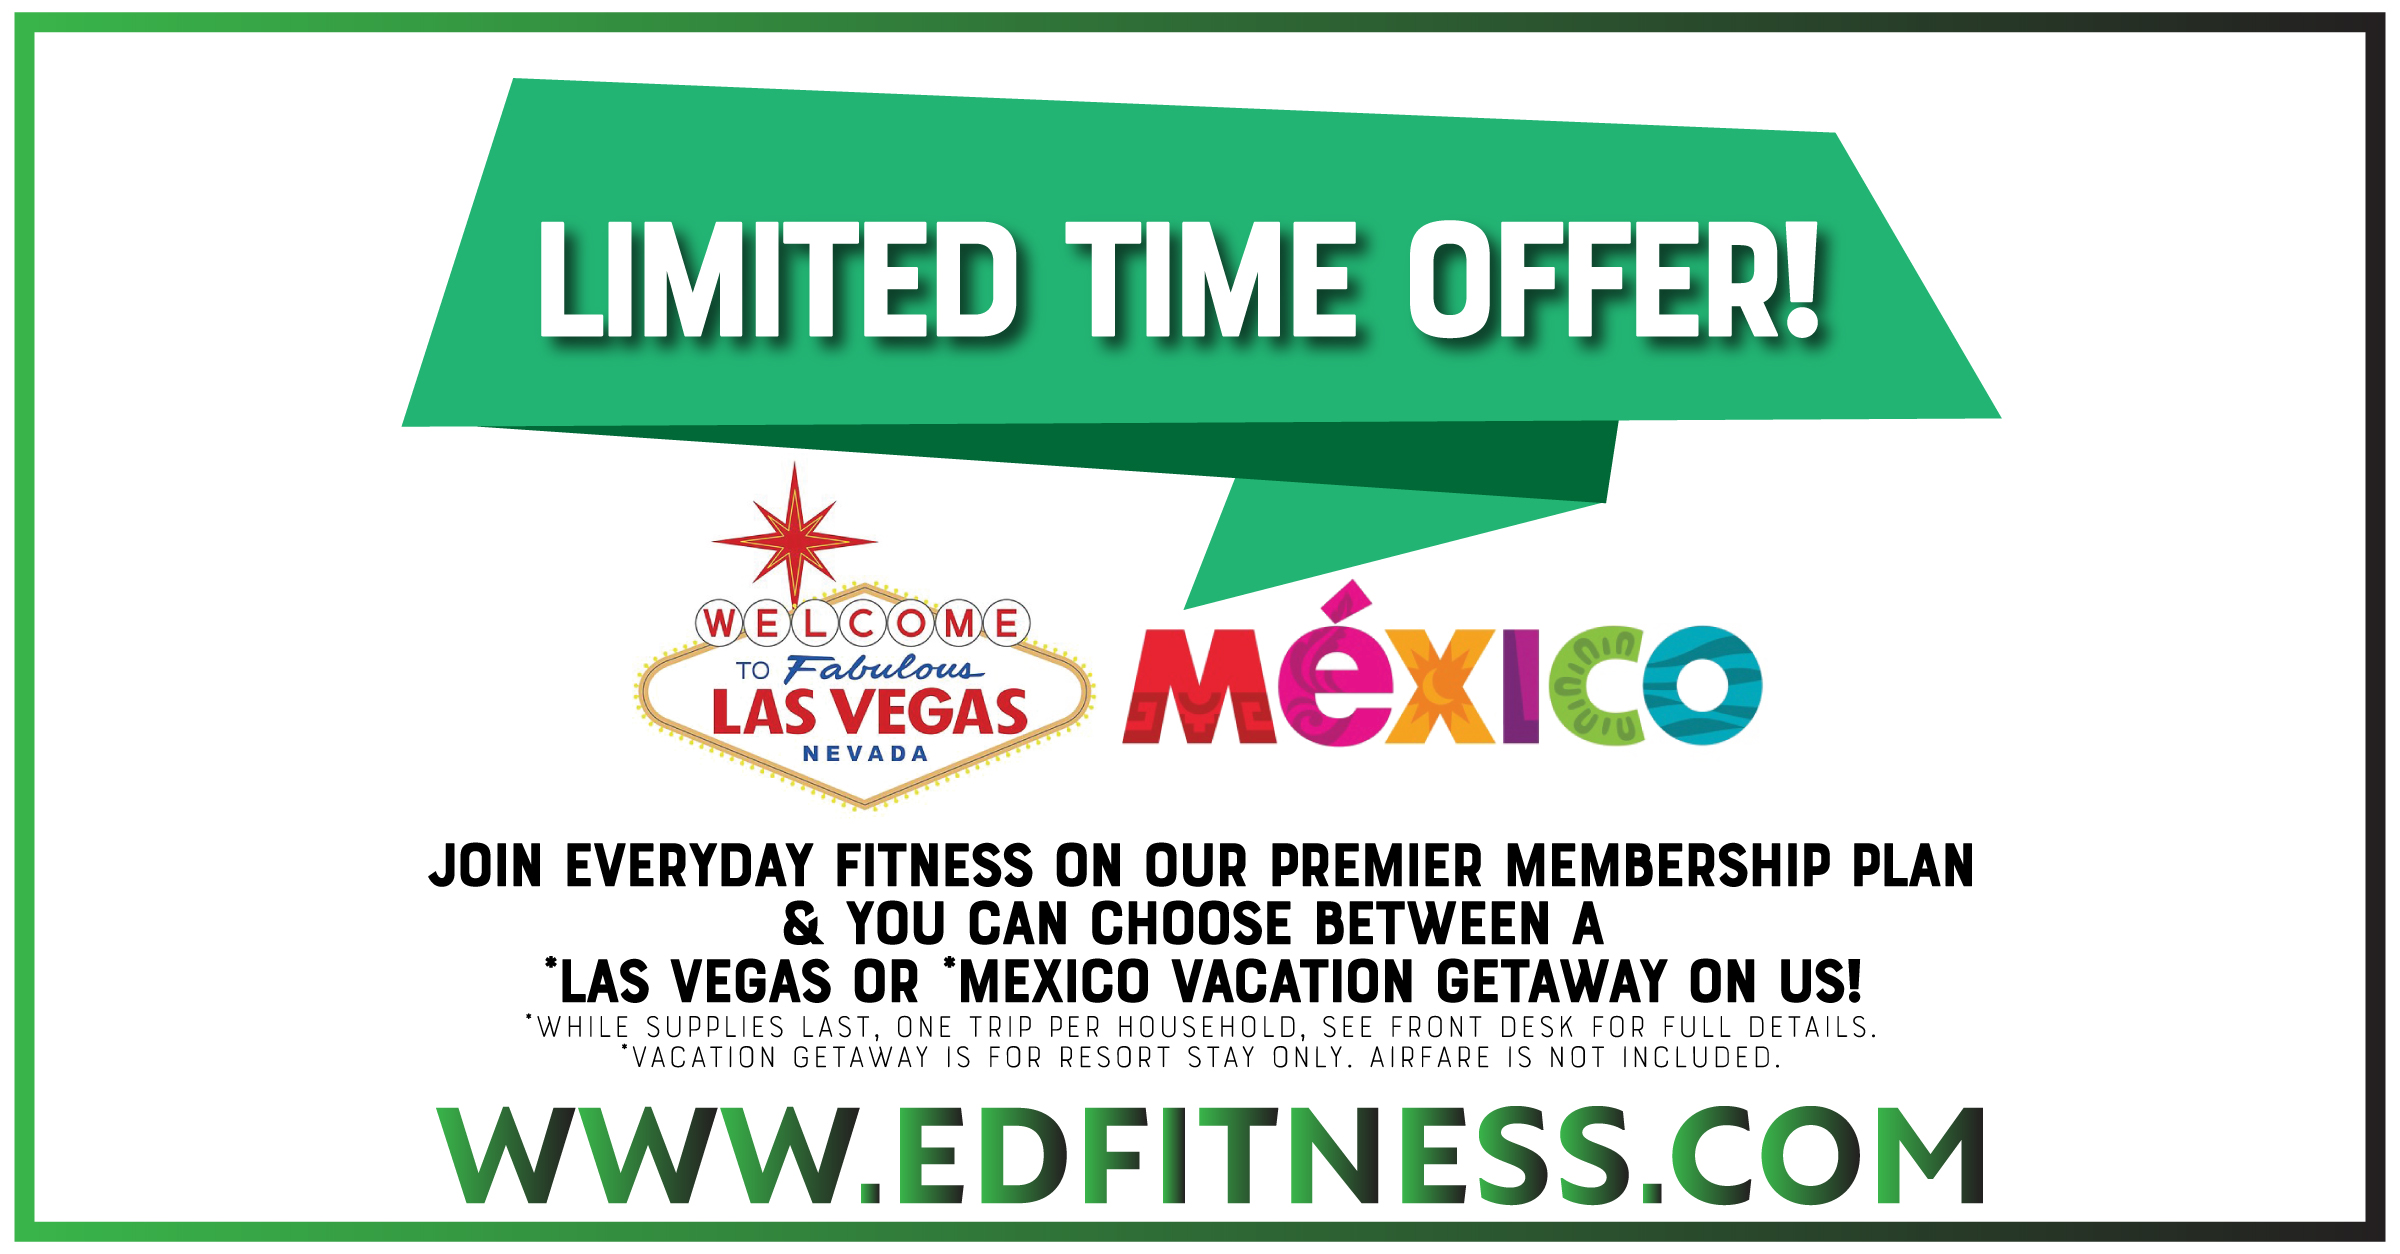 premier-membership-special-everyday-fitness-redding-ca.jpg